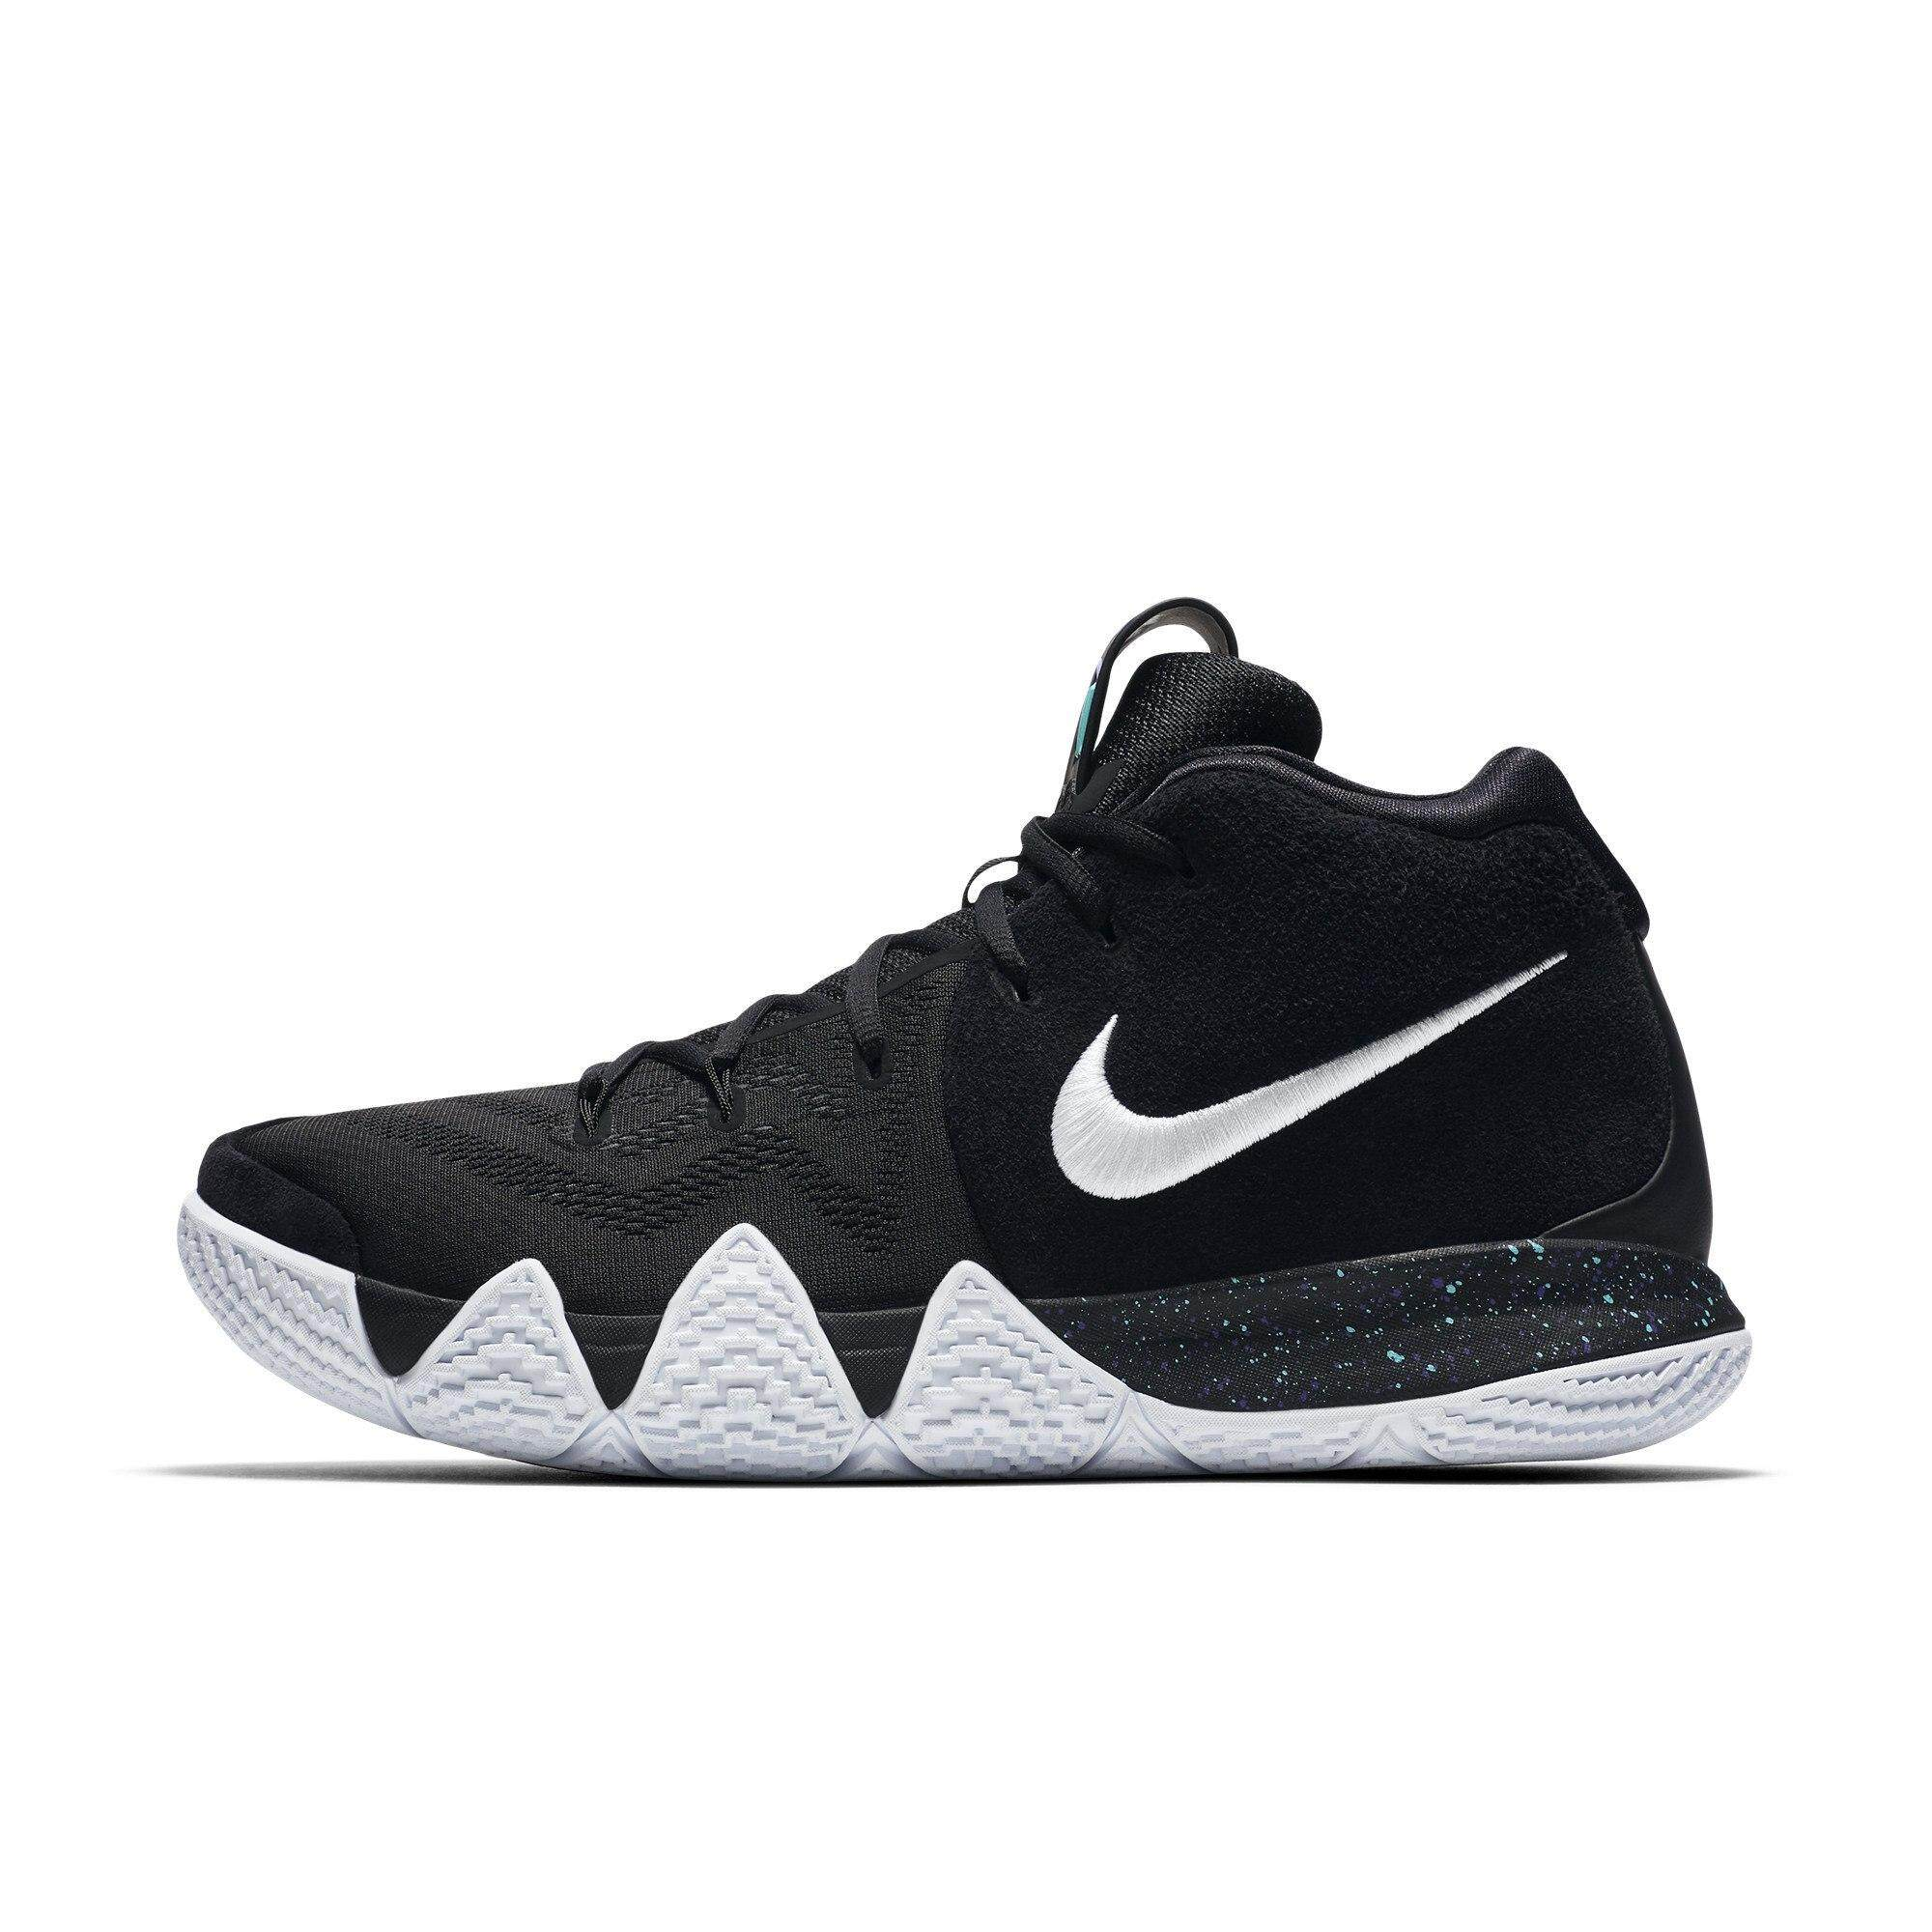 nike Kyrie 2 EP Irving 4th Generation Men s Basketball Shoes Sport Outdoor  Sneakers cdda0b7292f